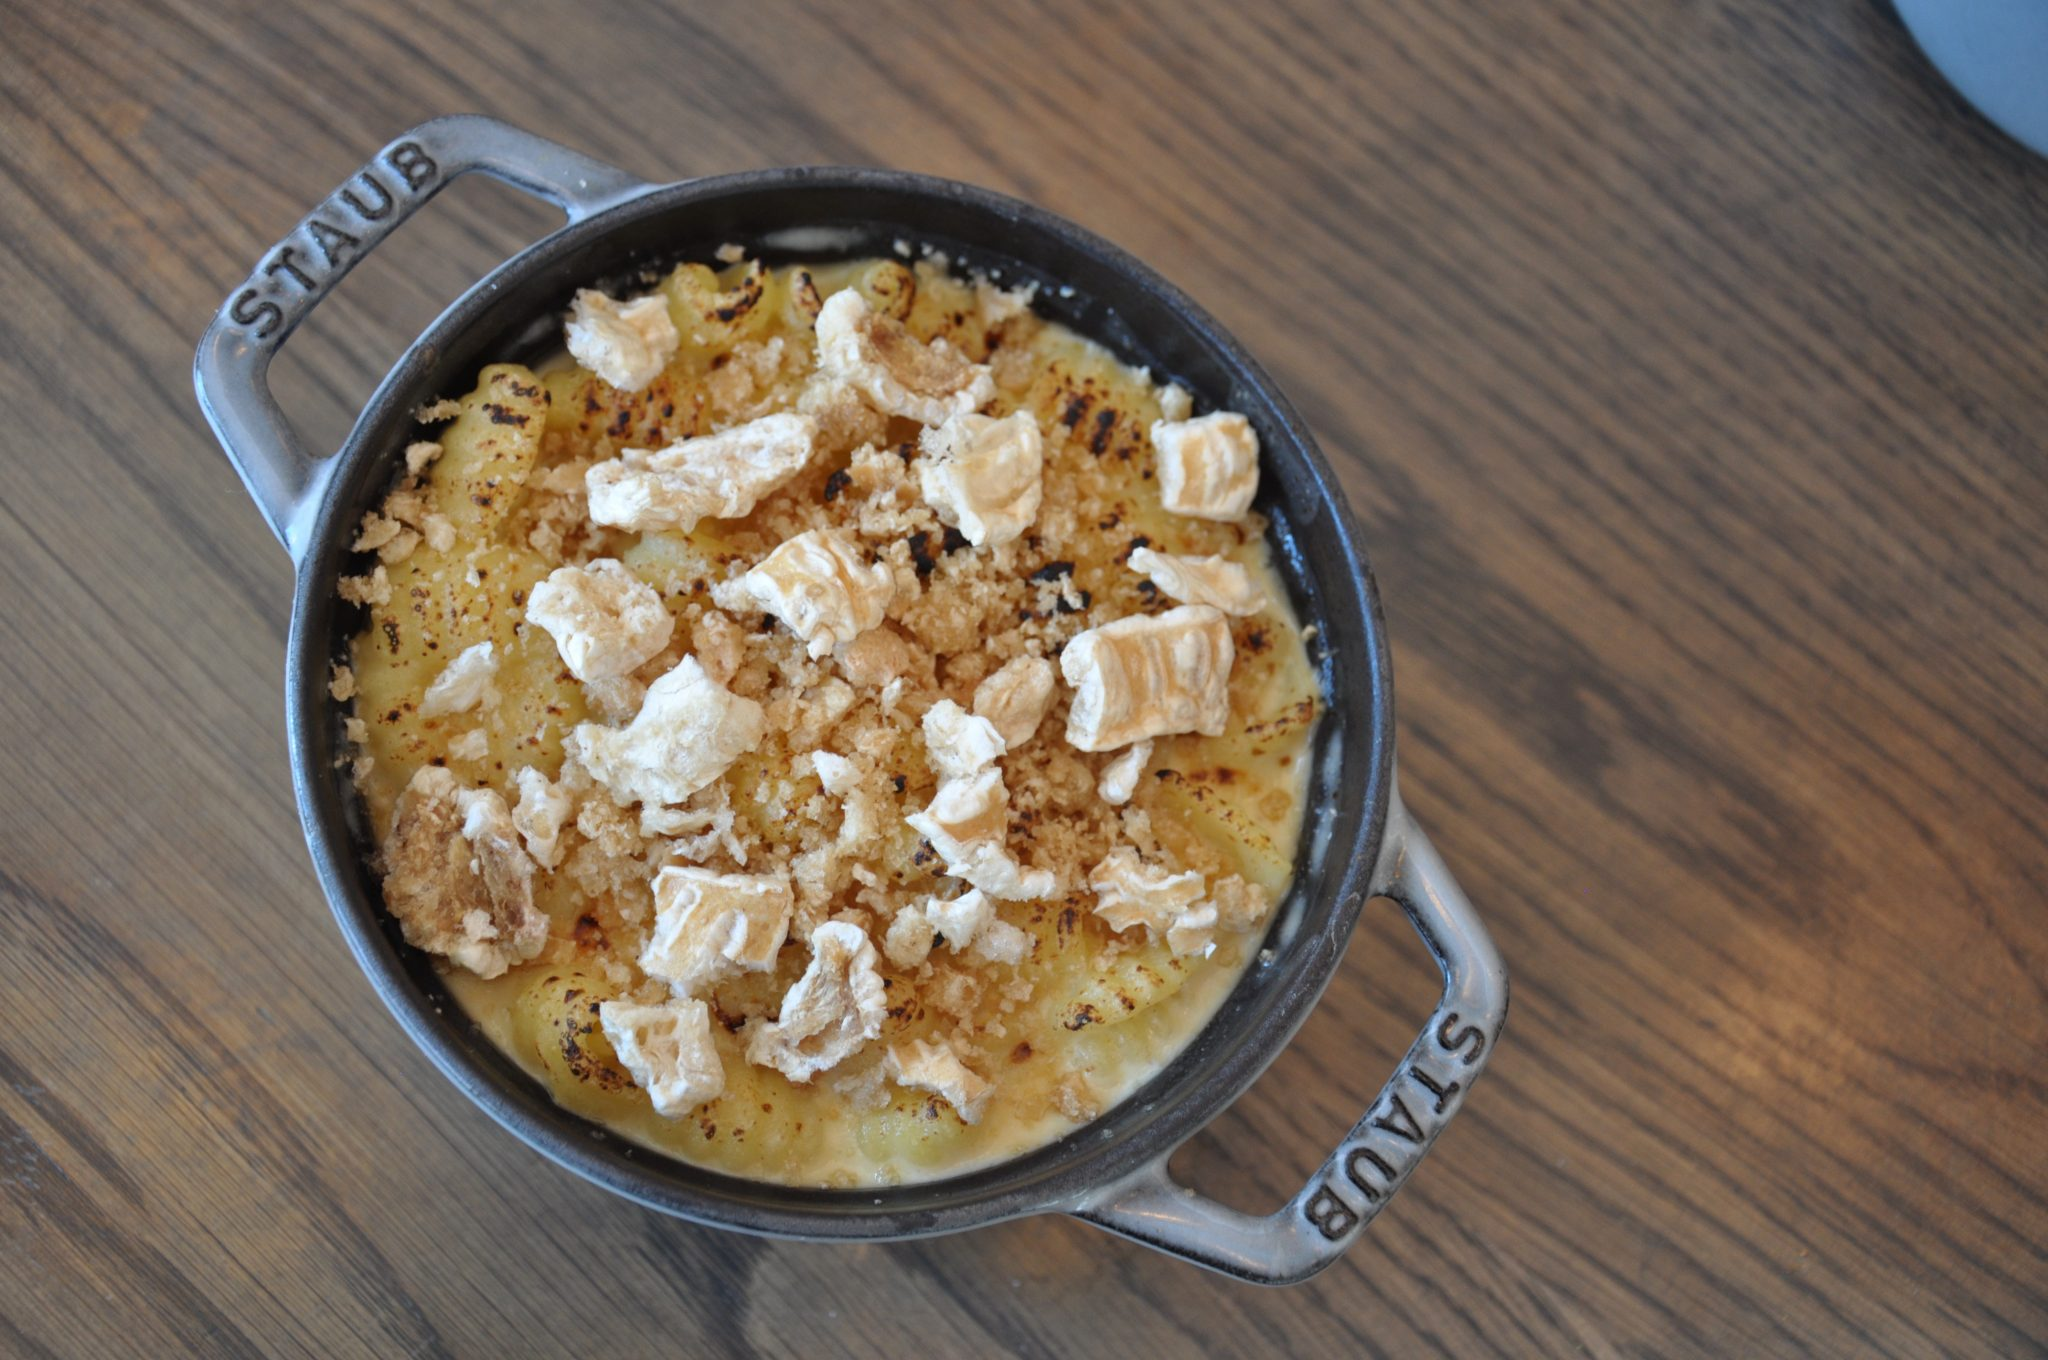 Creamy macaroni and cheese with chicharron crust topping